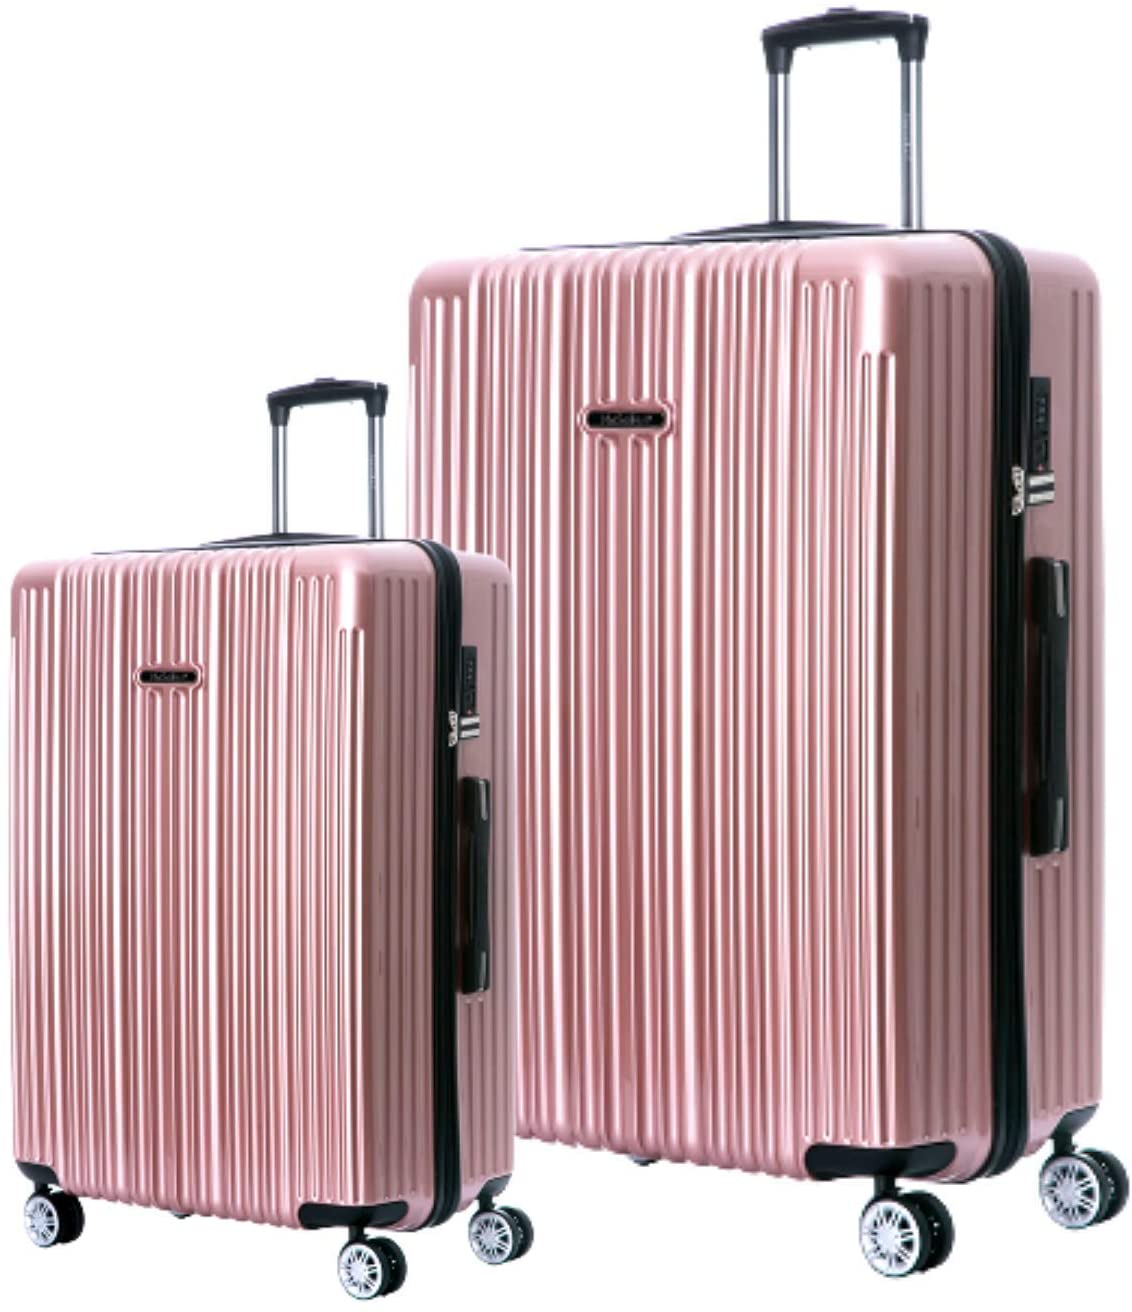 NaSaDen Hardshell Luggage Sets with Spinner Wheels Checked Carry On Luggage [ Rose Gold ] 29 Inch 22 Inch 2 Piece Set German Design TSA Lock ABS+PC